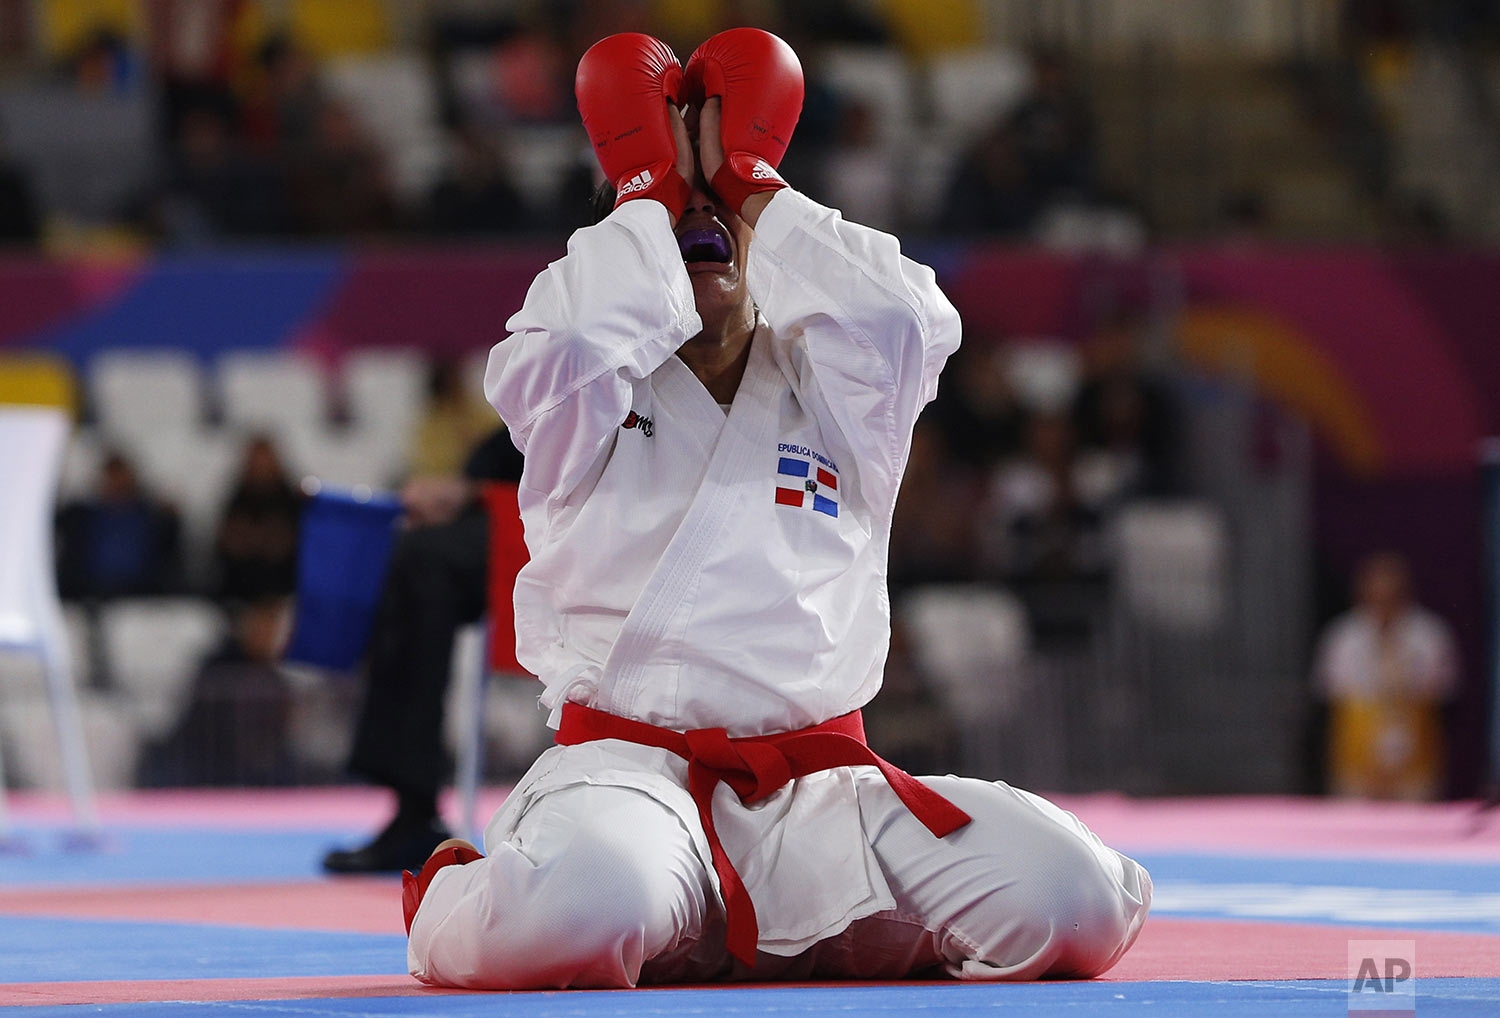 Tanya Rodriguez of the Dominican Republic celebrates after defeating Susana Li of Chile in the women's karate under 68kg gold medal match at the Pan American Games in Lima, Peru, Sunday, Aug. 11, 2019. (AP Photo/Juan Karita)